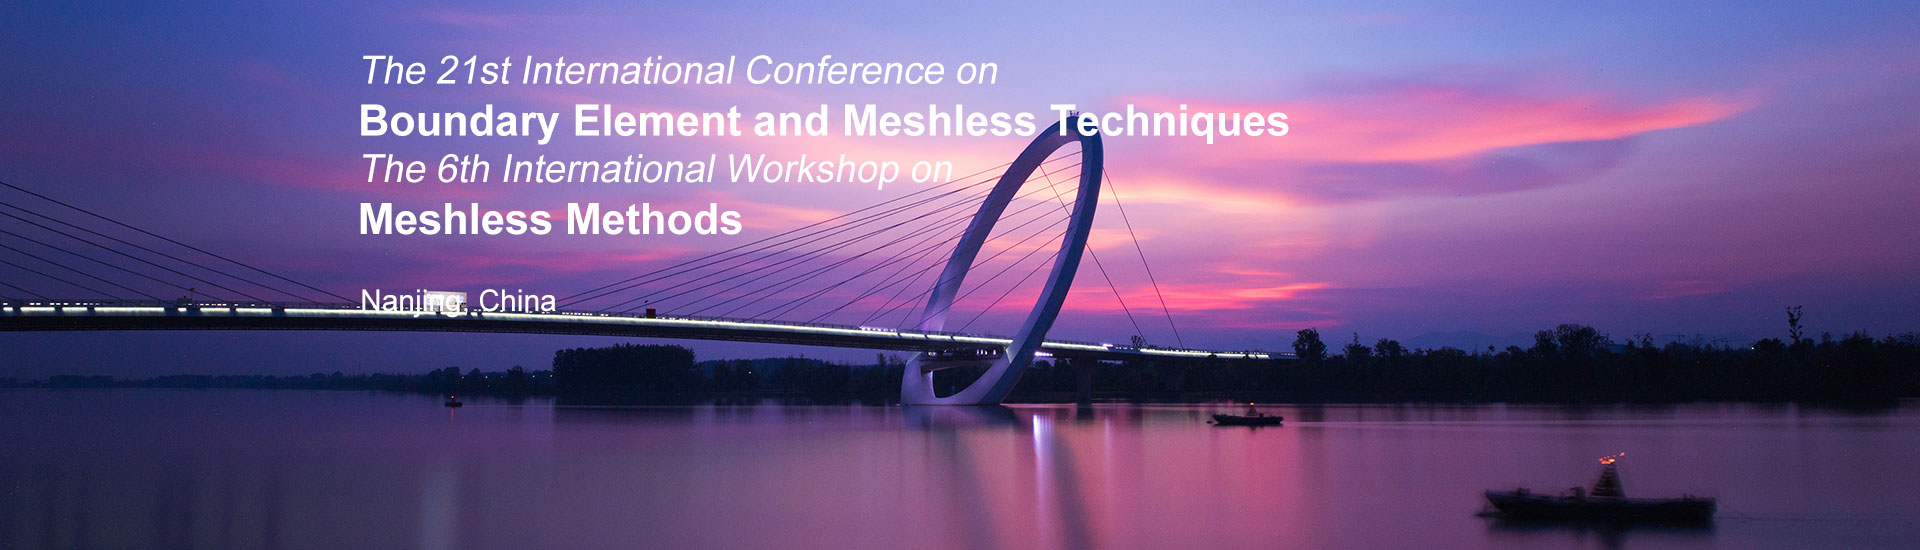 The 21st International Conference on Boundary Element and Meshless Techniques (BeTeq) & The 6th International Workshop on Meshless Methods (IWMM)